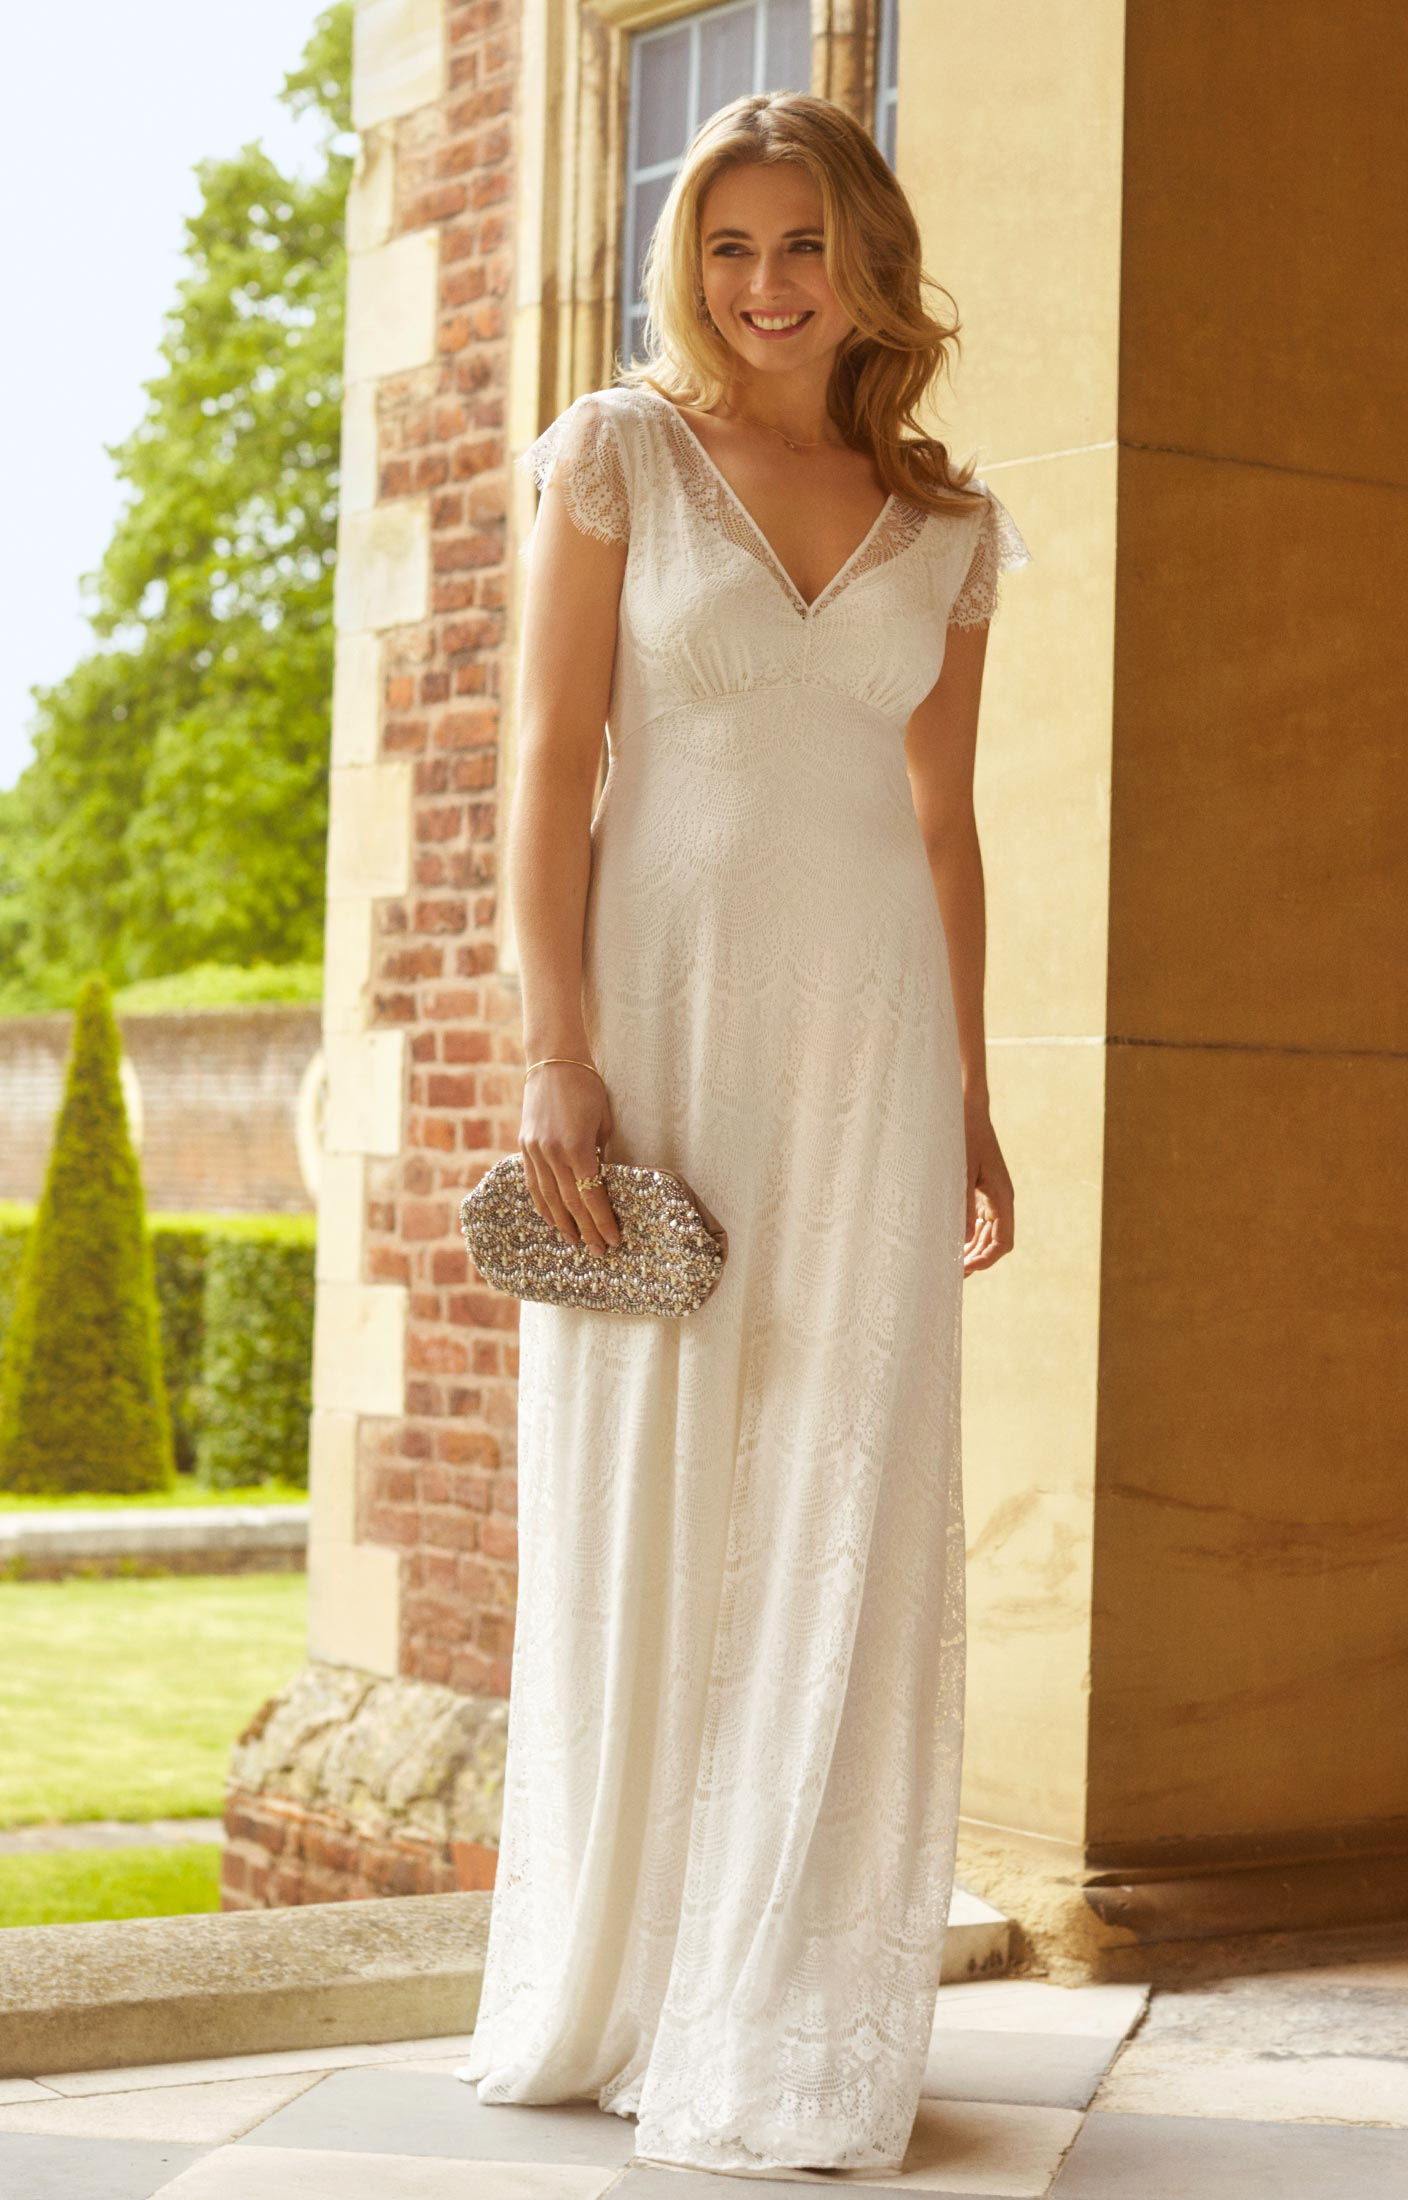 Isobel Wedding Gown Ivory Evening Dresses Occasion Wear